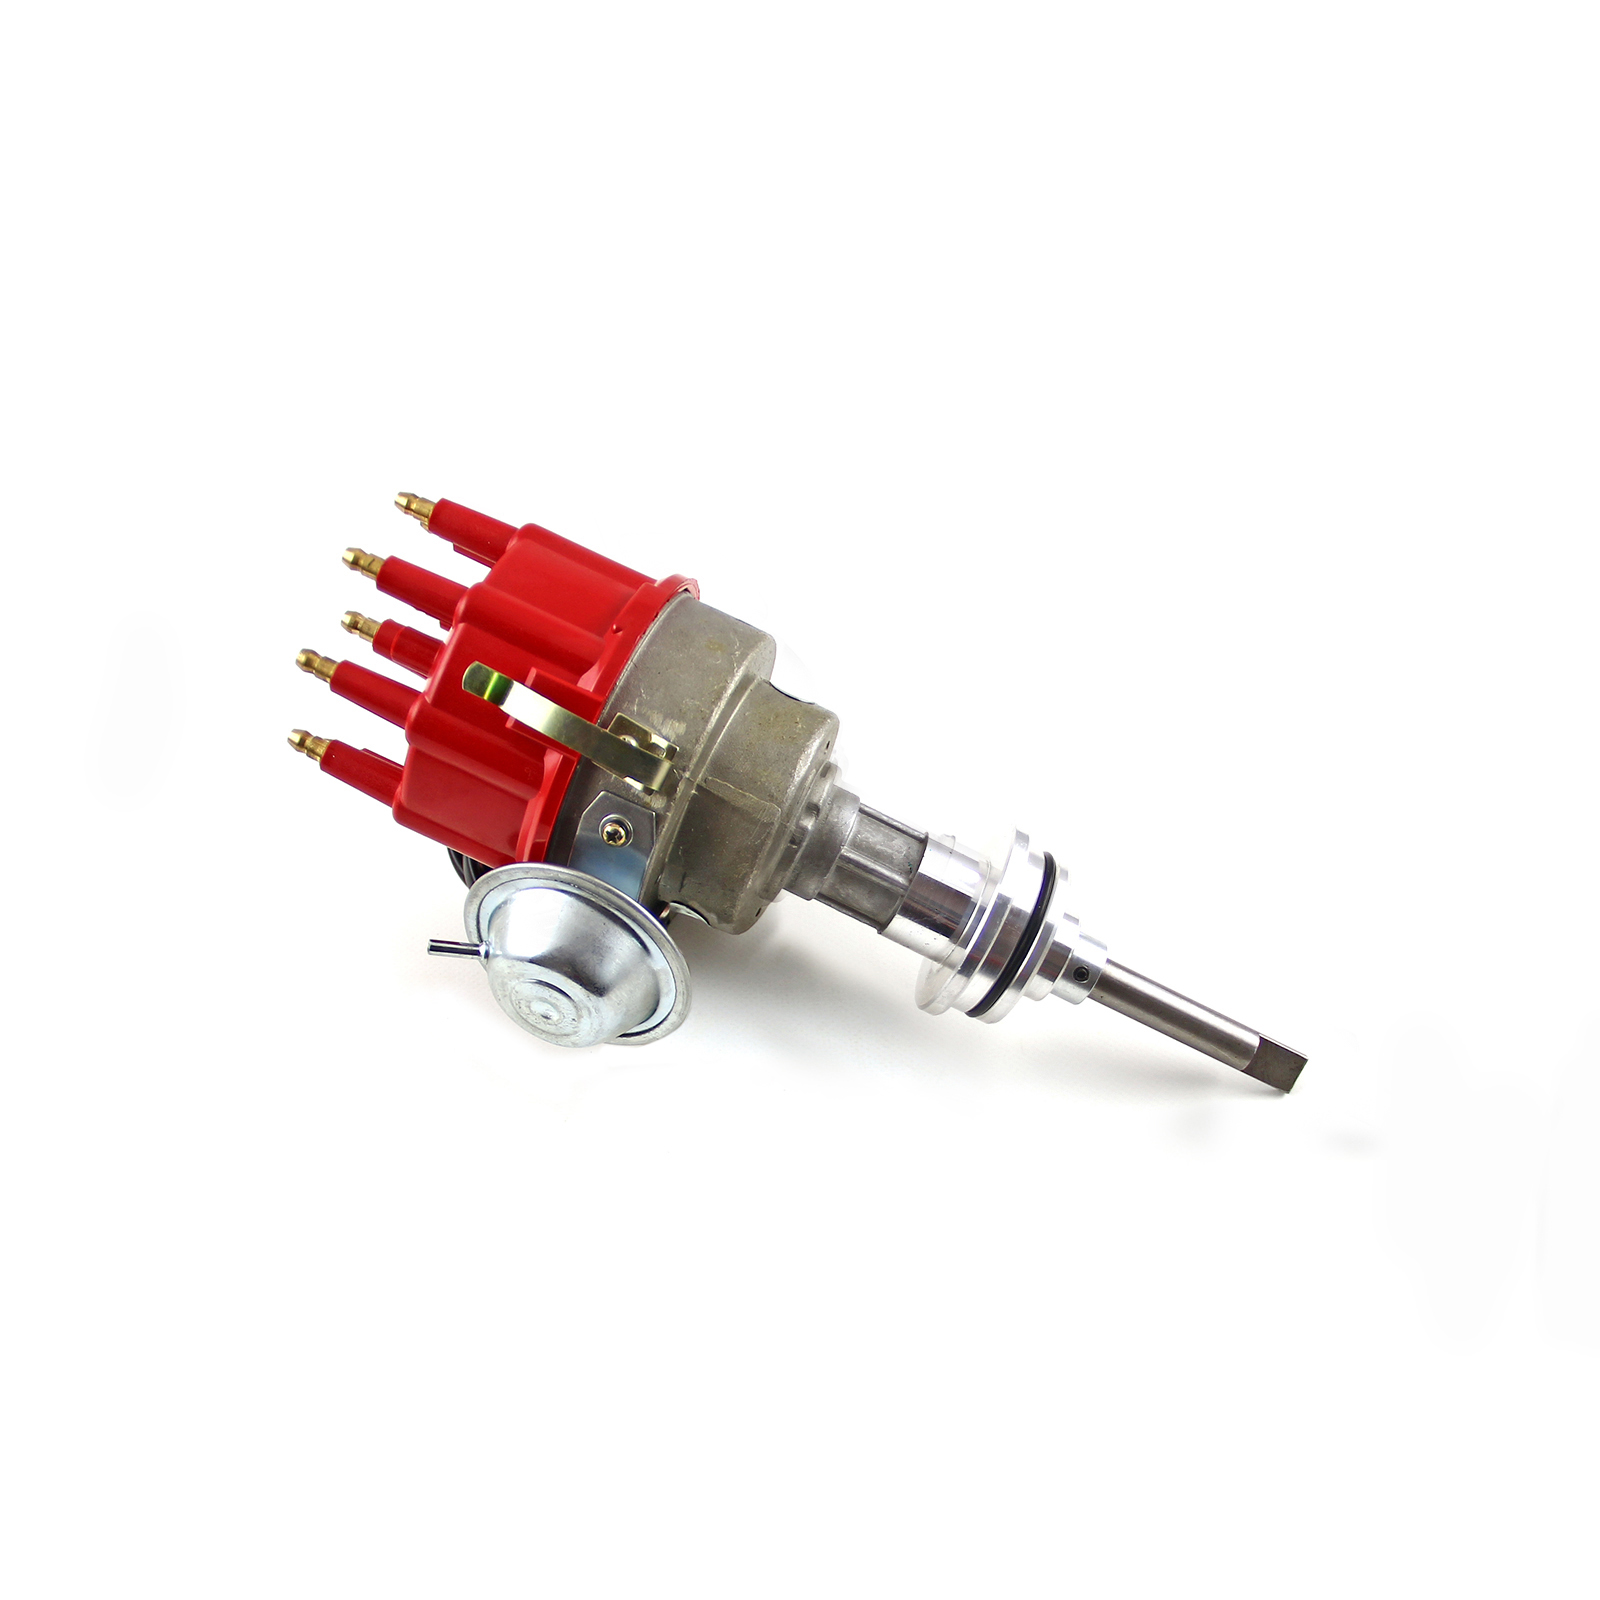 Mopar Chrysler BB 440 7000 Series Ready to Run Distributor RPM [Red]